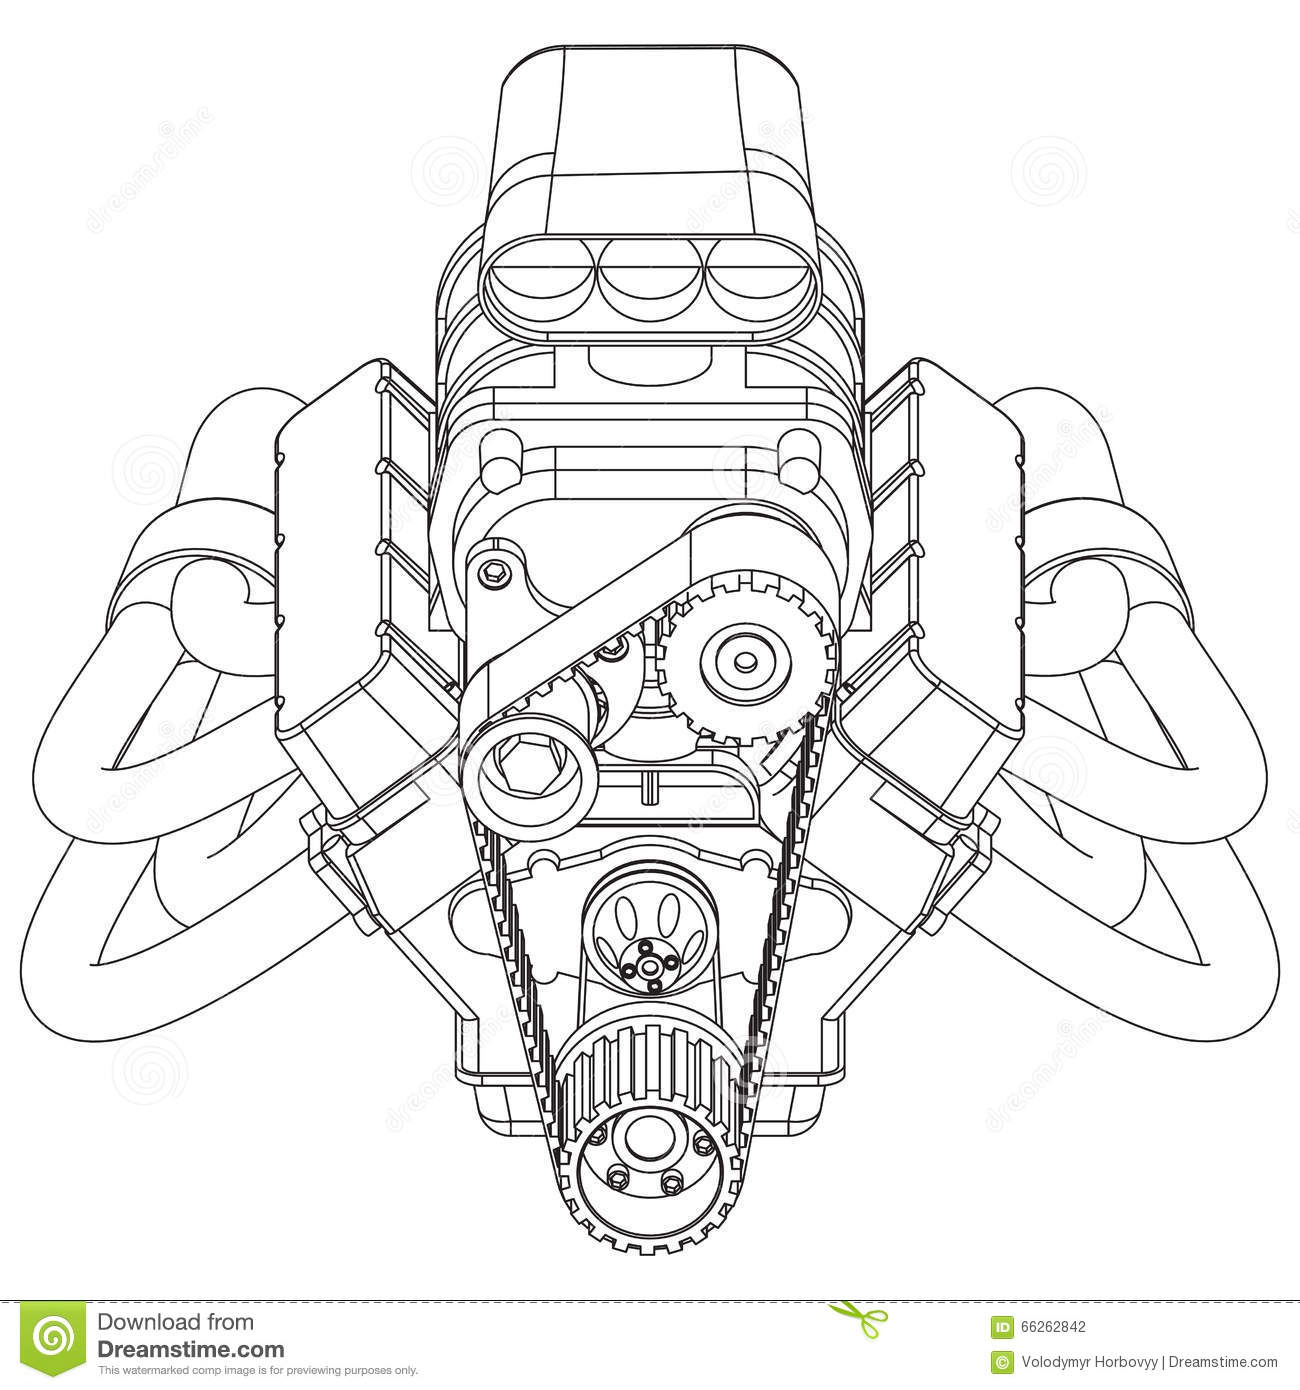 hot rod engine stock vector